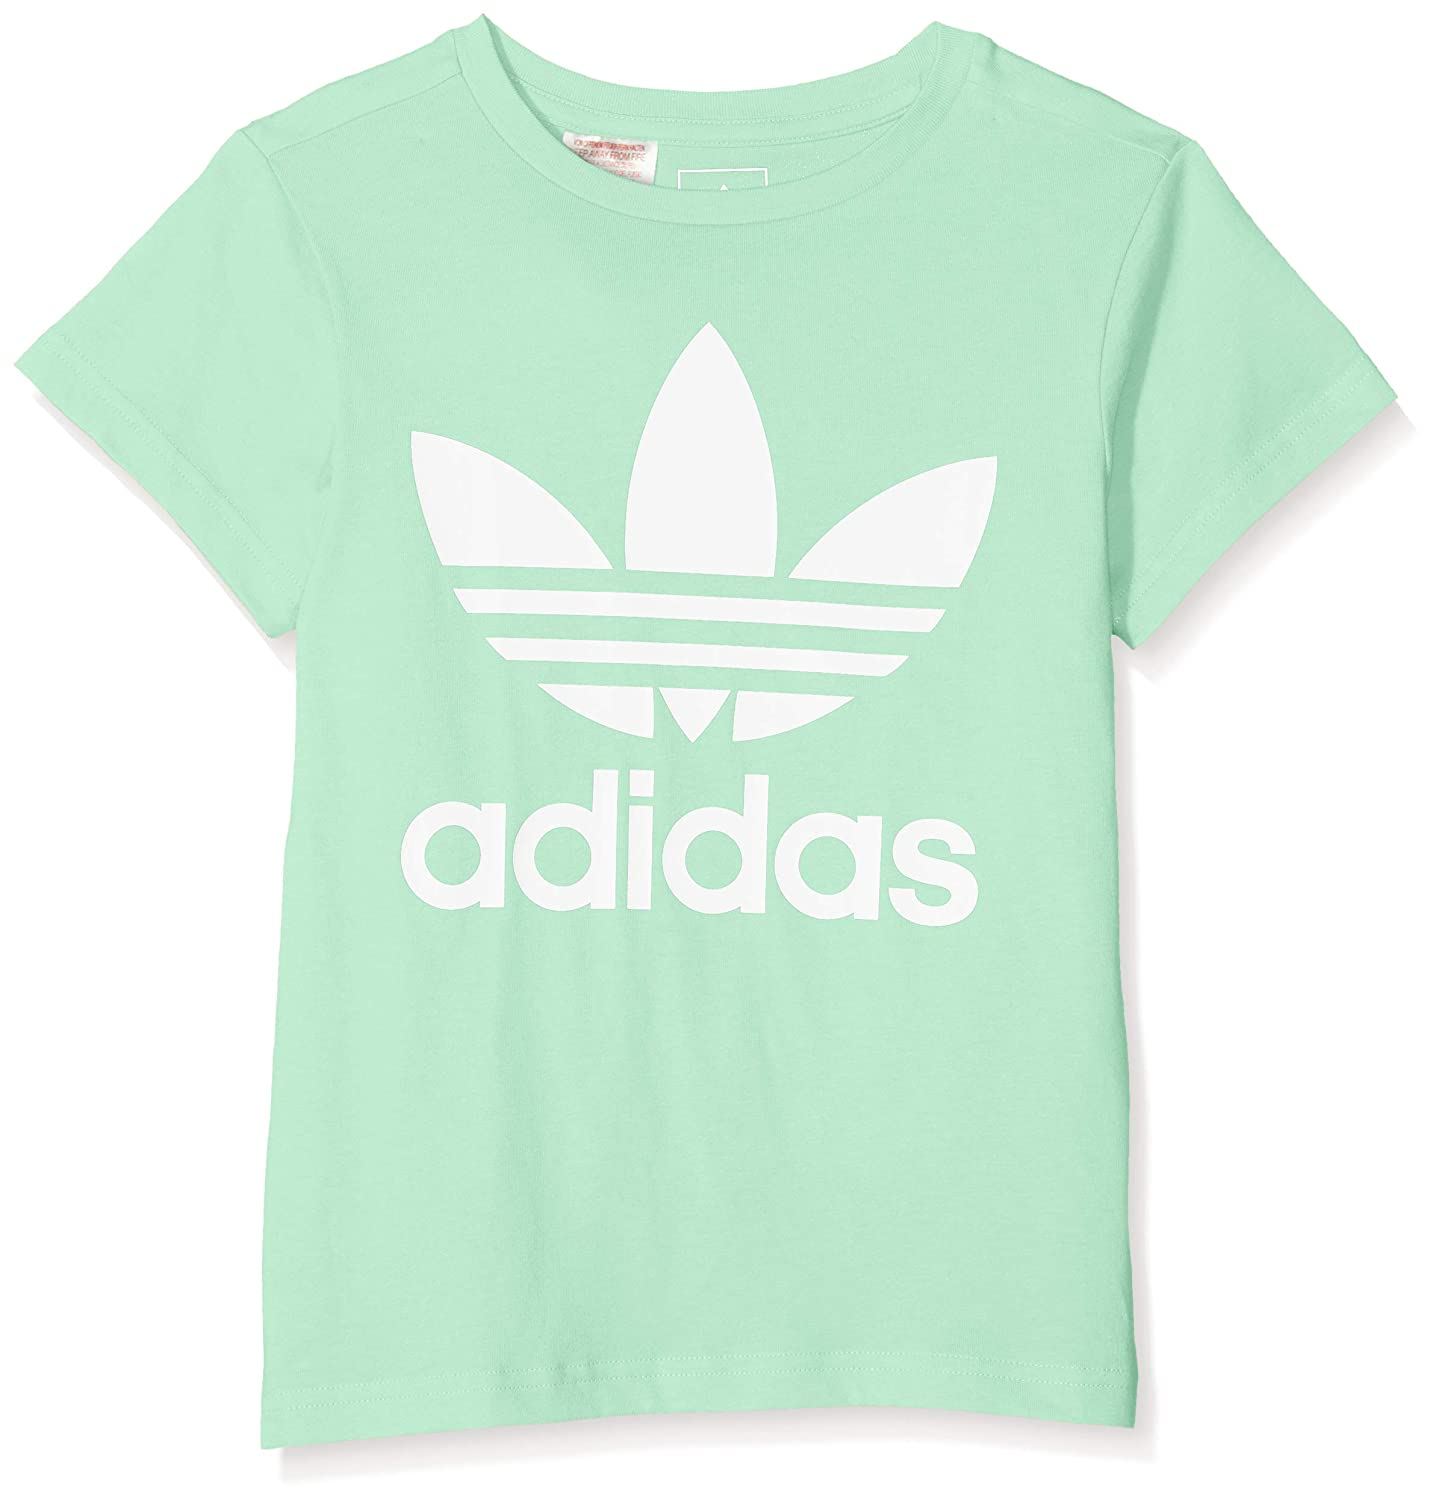 adidas Children's Trefoil T-Shirt Clear Mint/White Size 158 DH2473